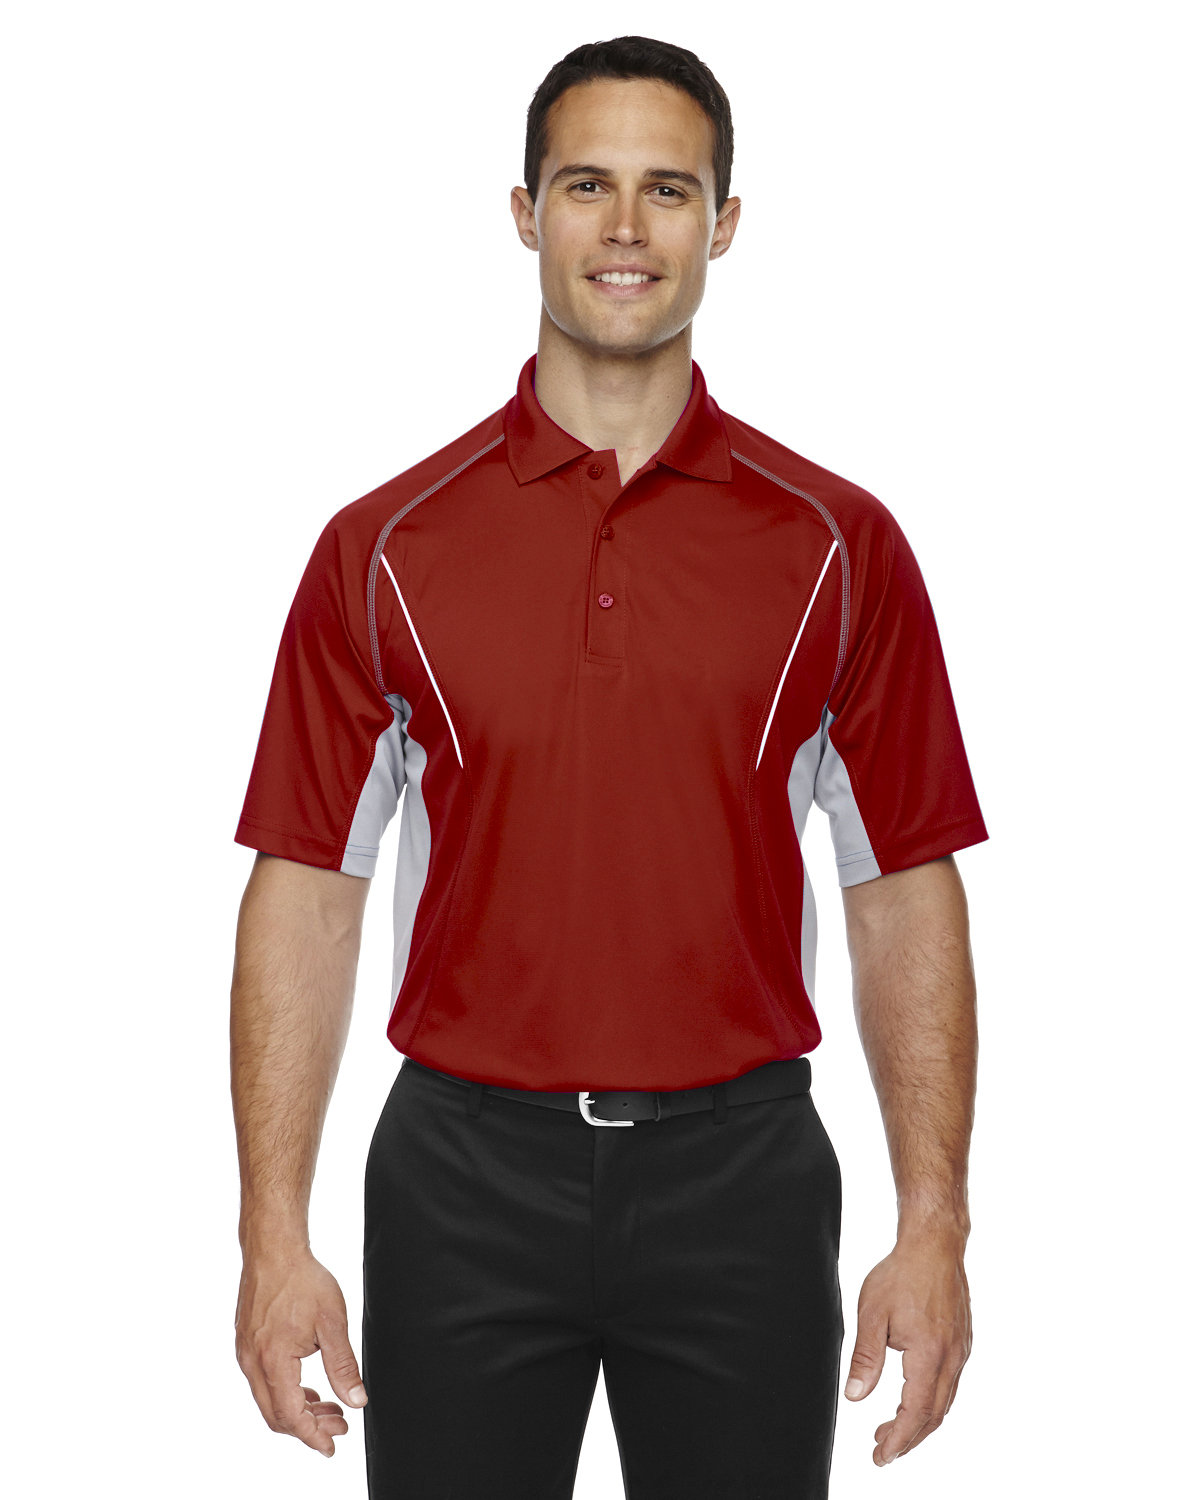 Extreme Men's Eperformance™ Parallel Snag Protection Polo with Piping CLASSIC RED